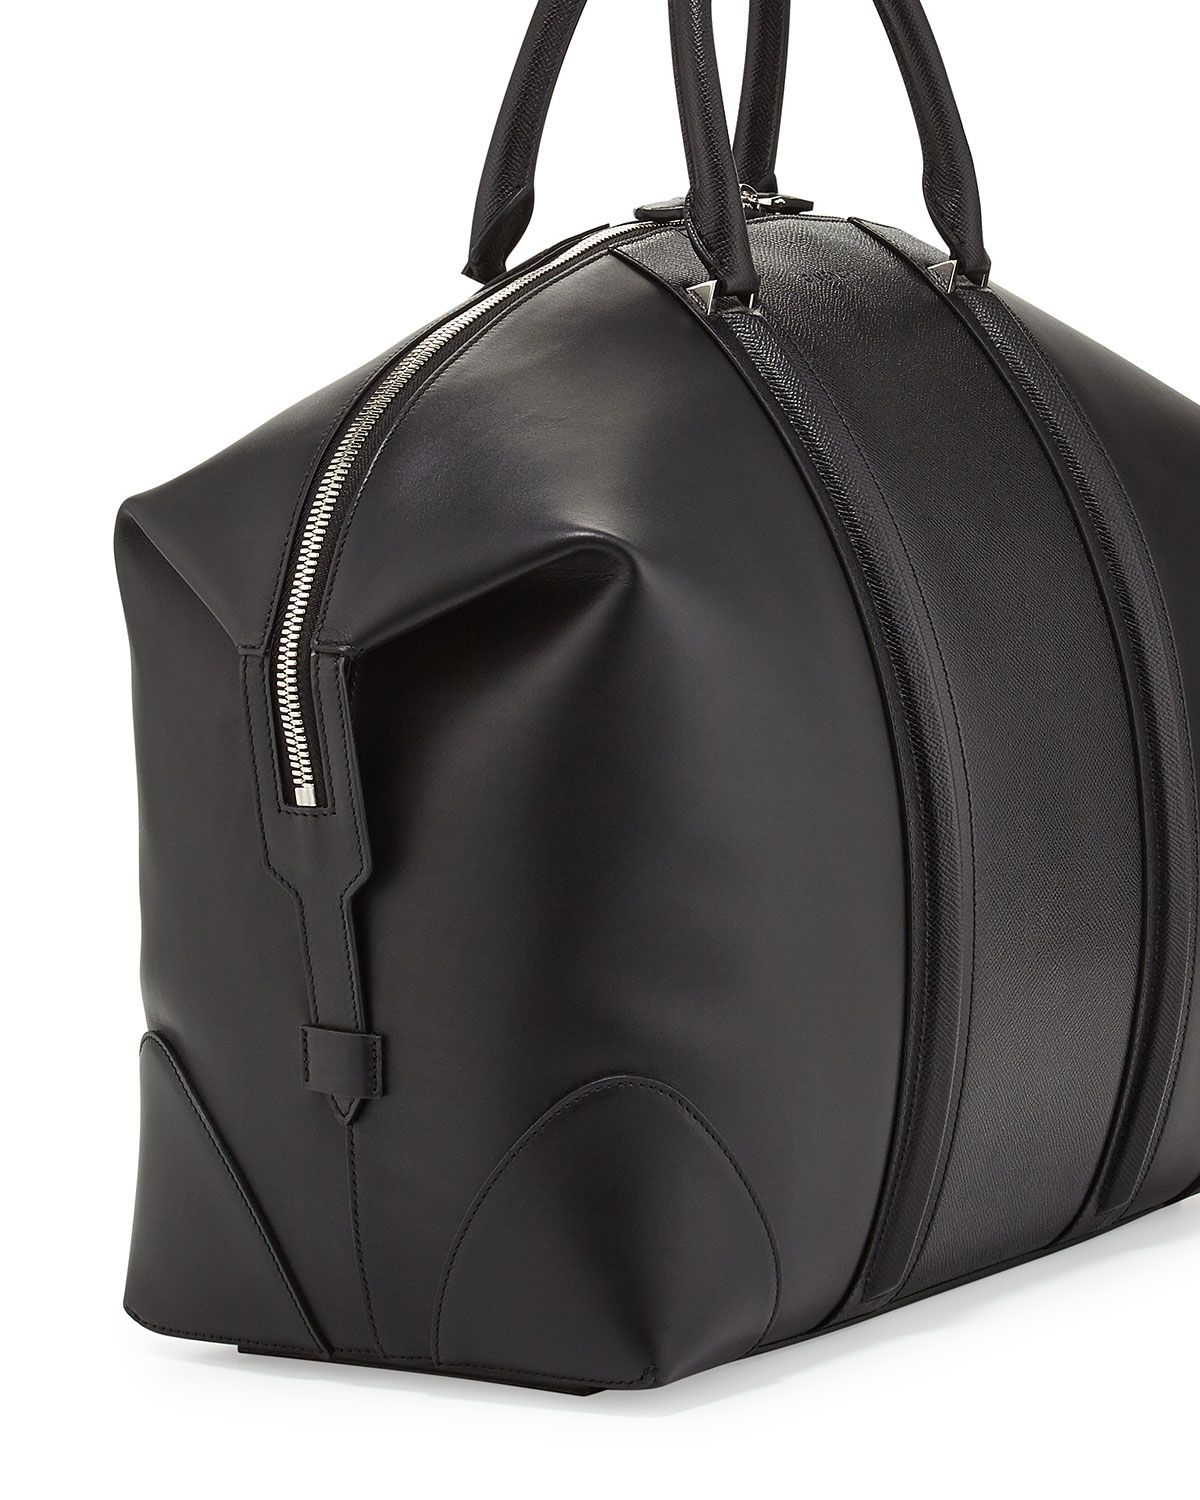 fb208699bcd6 Givenchy Black Leather Lc Duffle Bag for men - Google Search